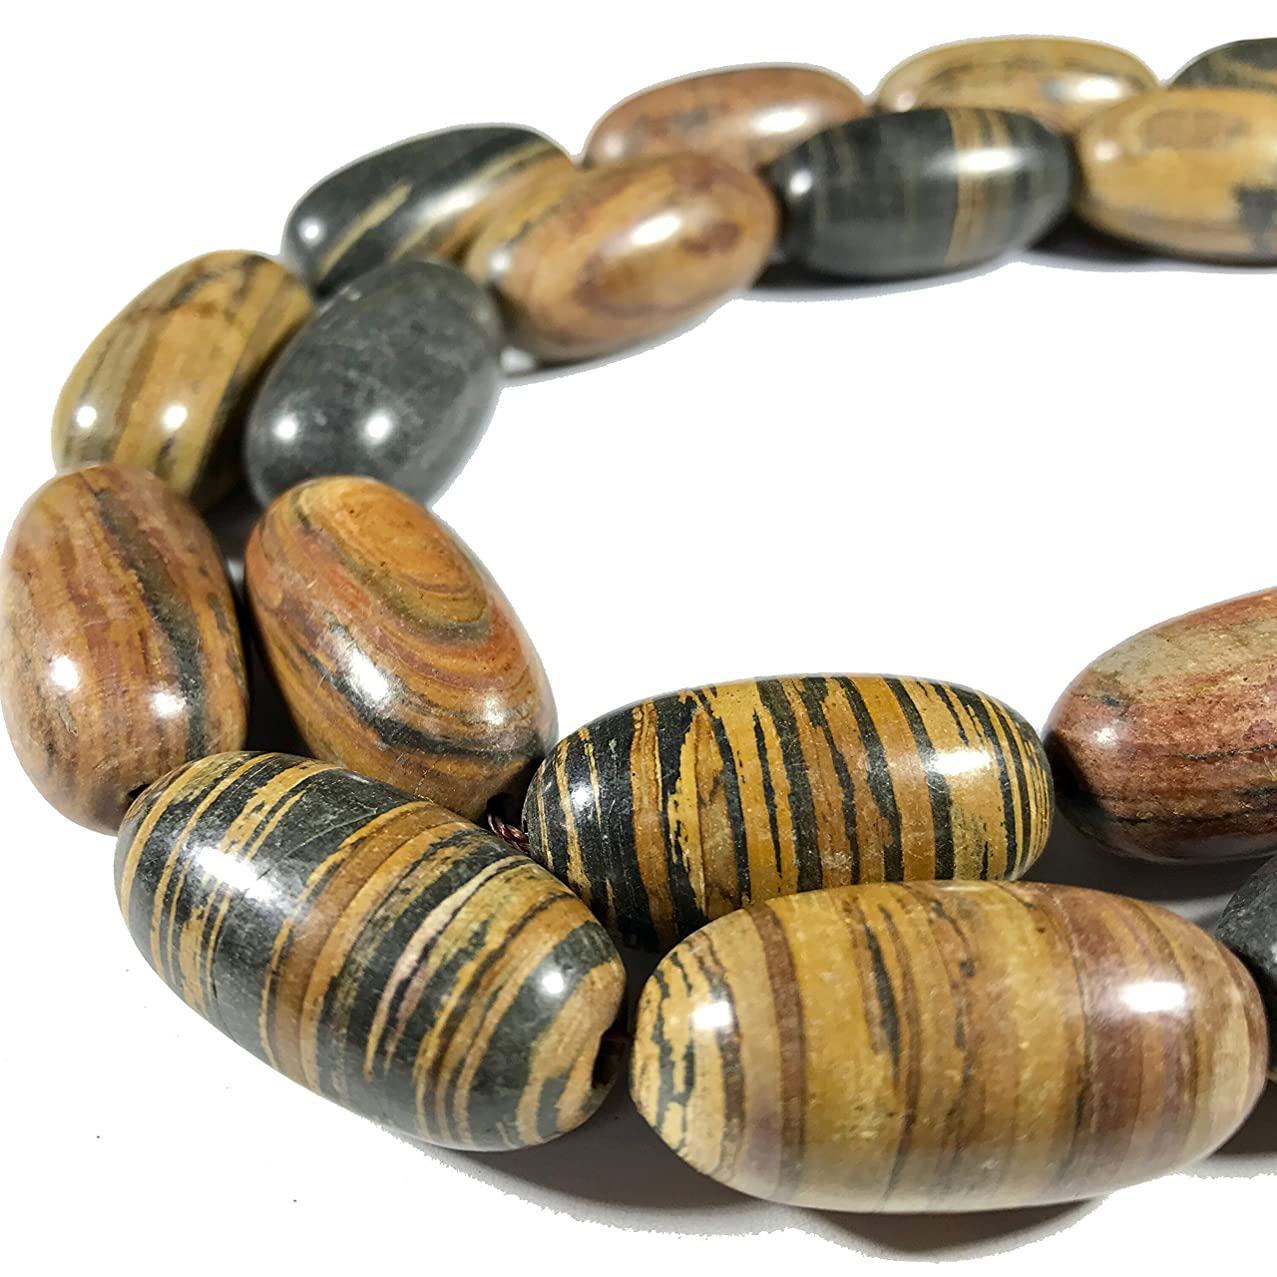 [ABCgems] Extremely Rare Matte Madagascan Chocolate Petrified Wood AKA Fossilized Wood (Exquisite Tiger Matrix- Grade AA) 15x30mm Smooth Rice Beads For Beading & Jewelry Making (No Polish)